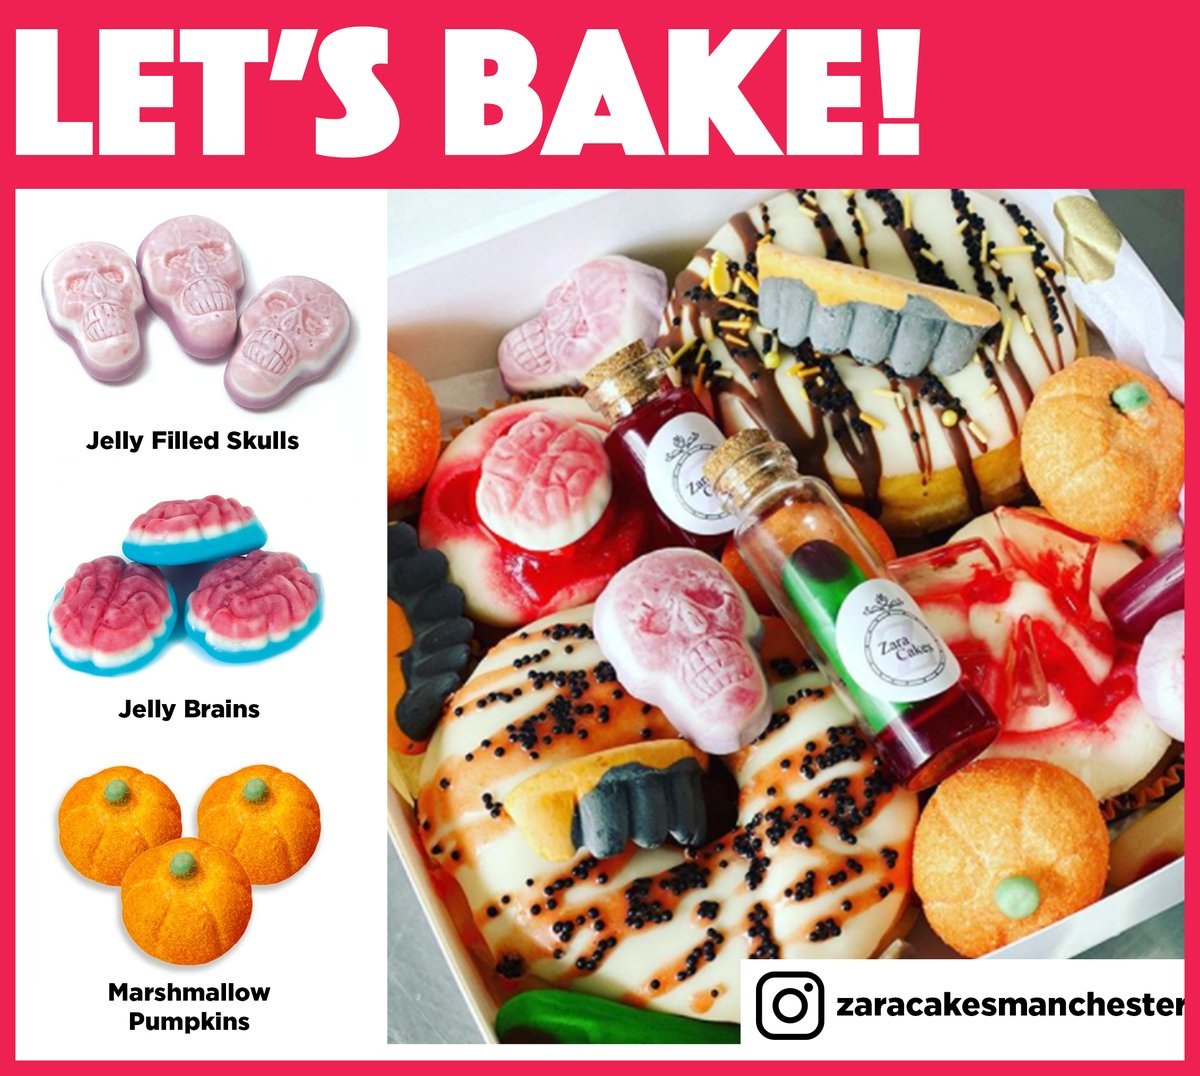 It's Bake Off day! It's bread week this week, and whilst we know that doughnuts are not strictly bread, these creations from @CakesZara looked too good not to share! 😋  Check out our pick & mix range at the link below and see what you can create!   https://t.co/7kreaEmCpf https://t.co/xNSi3DTGVB